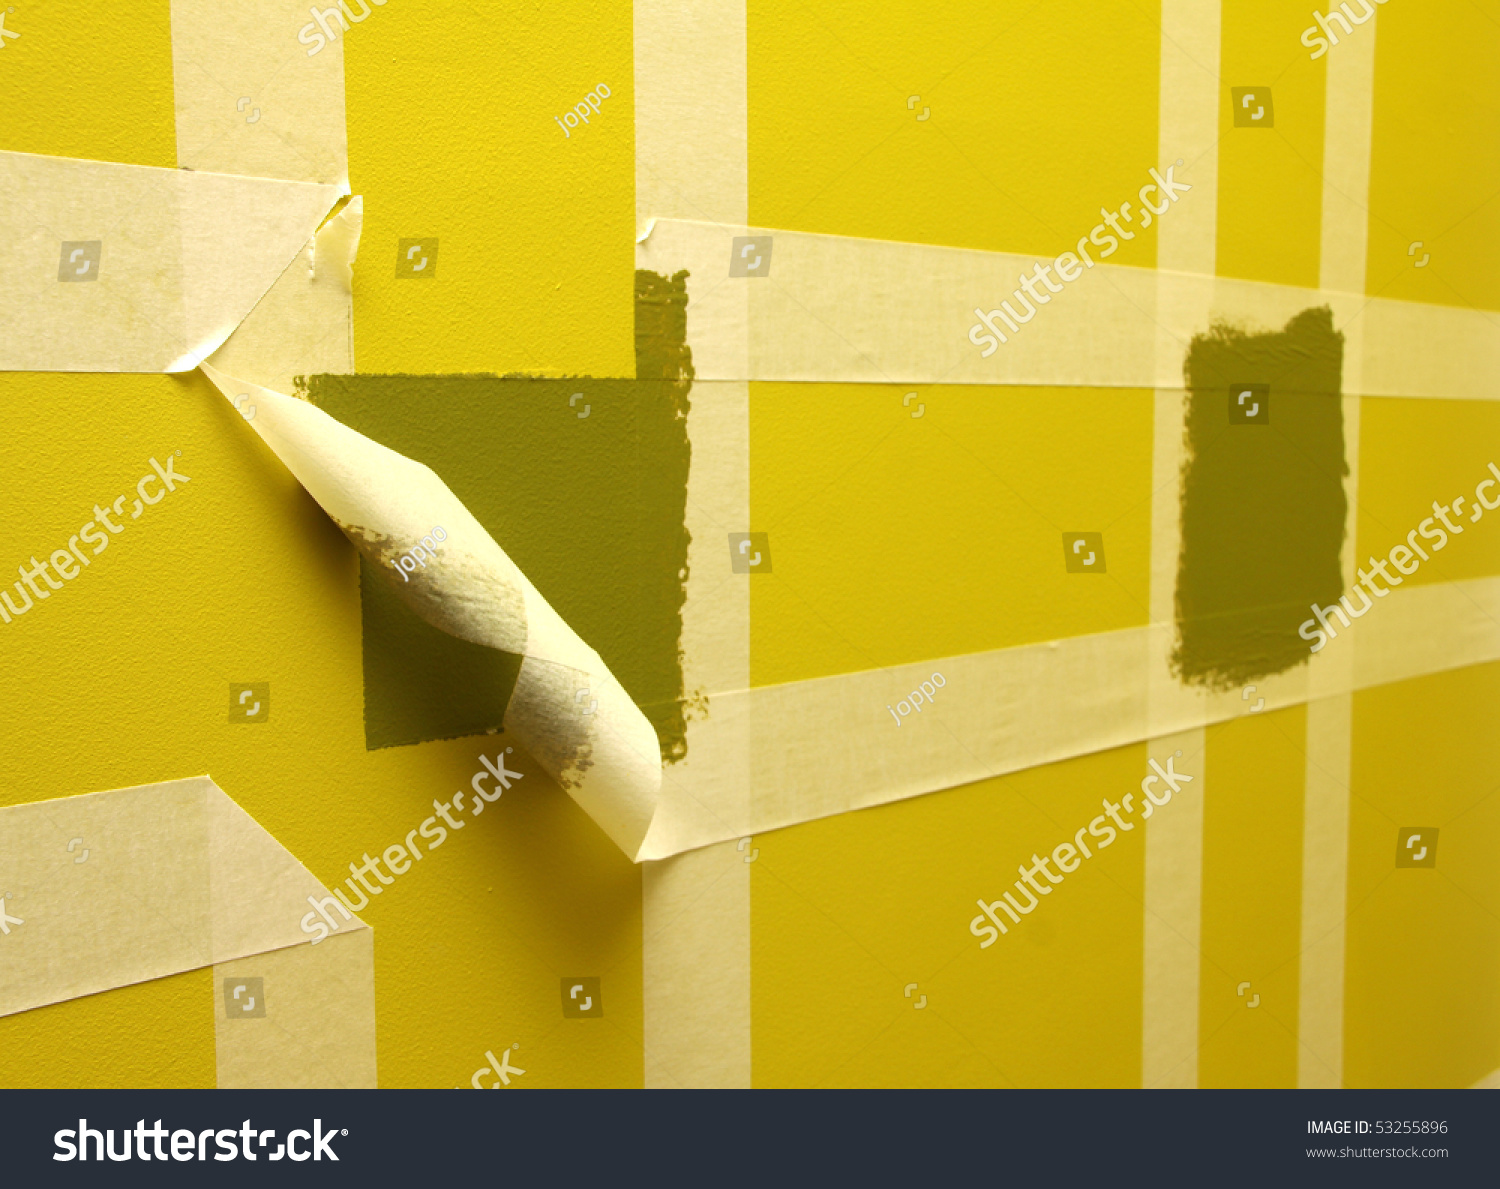 painting wall masking tape stock photo 53255896 shutterstock. Black Bedroom Furniture Sets. Home Design Ideas